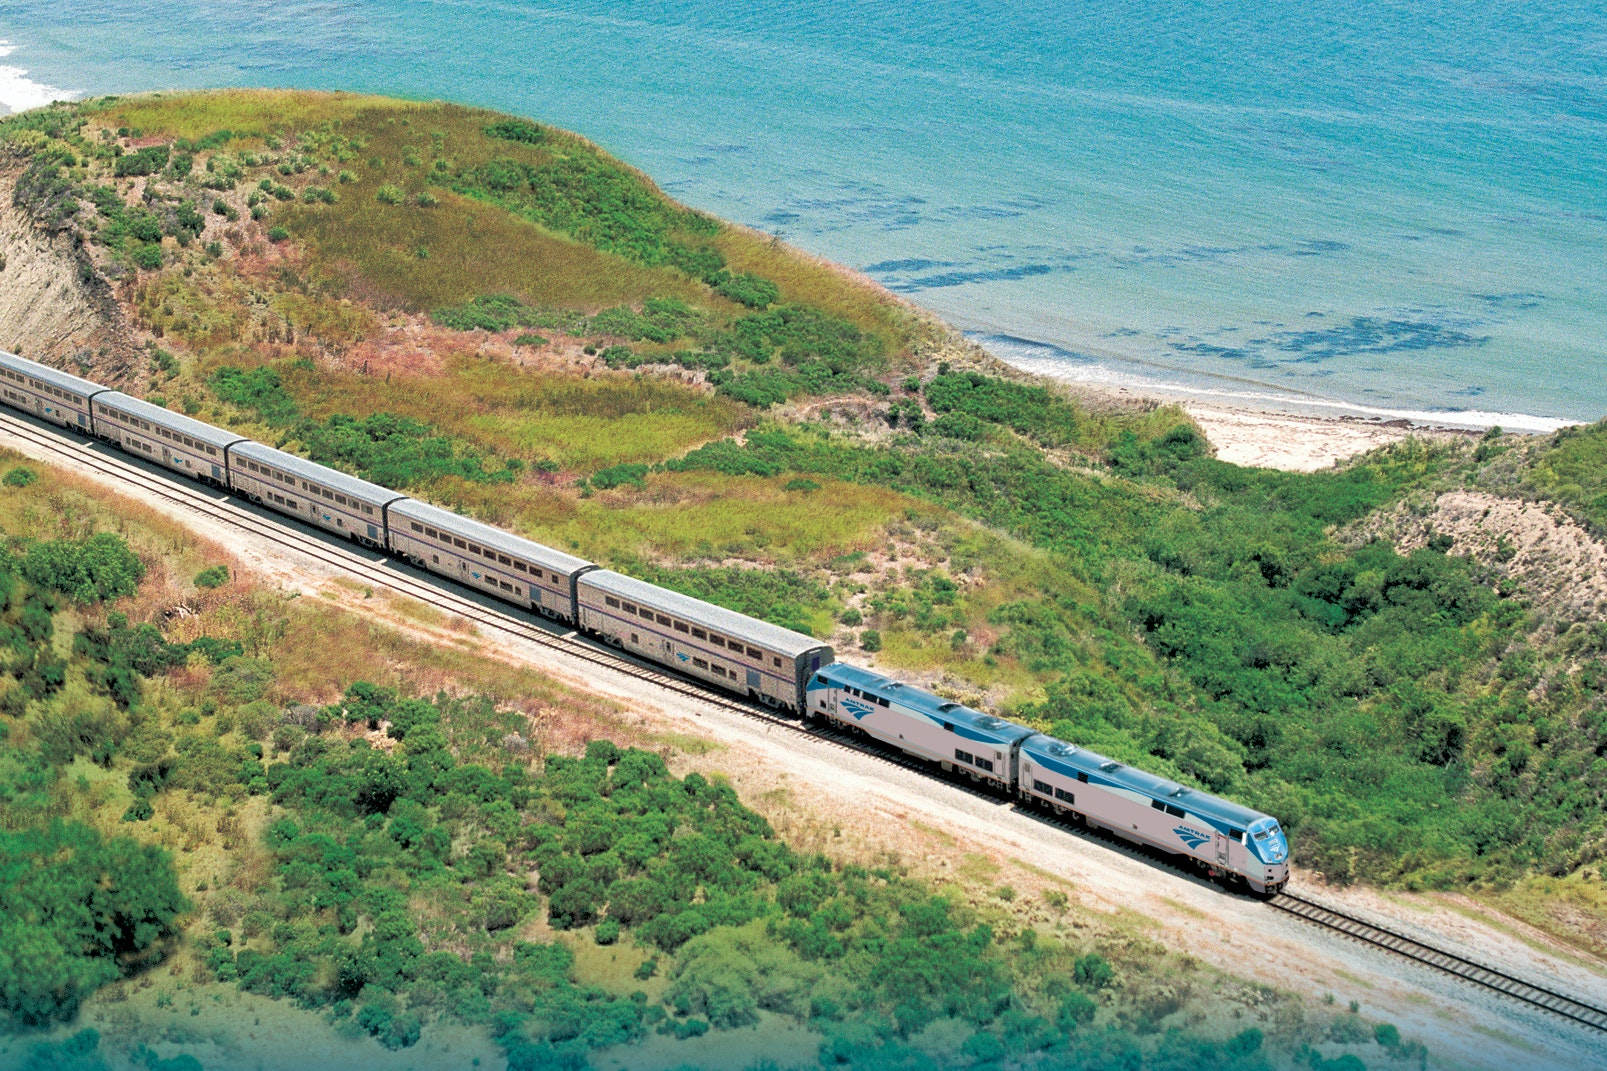 The Pacific coastline is just one highlight of the Coast Starlight train.